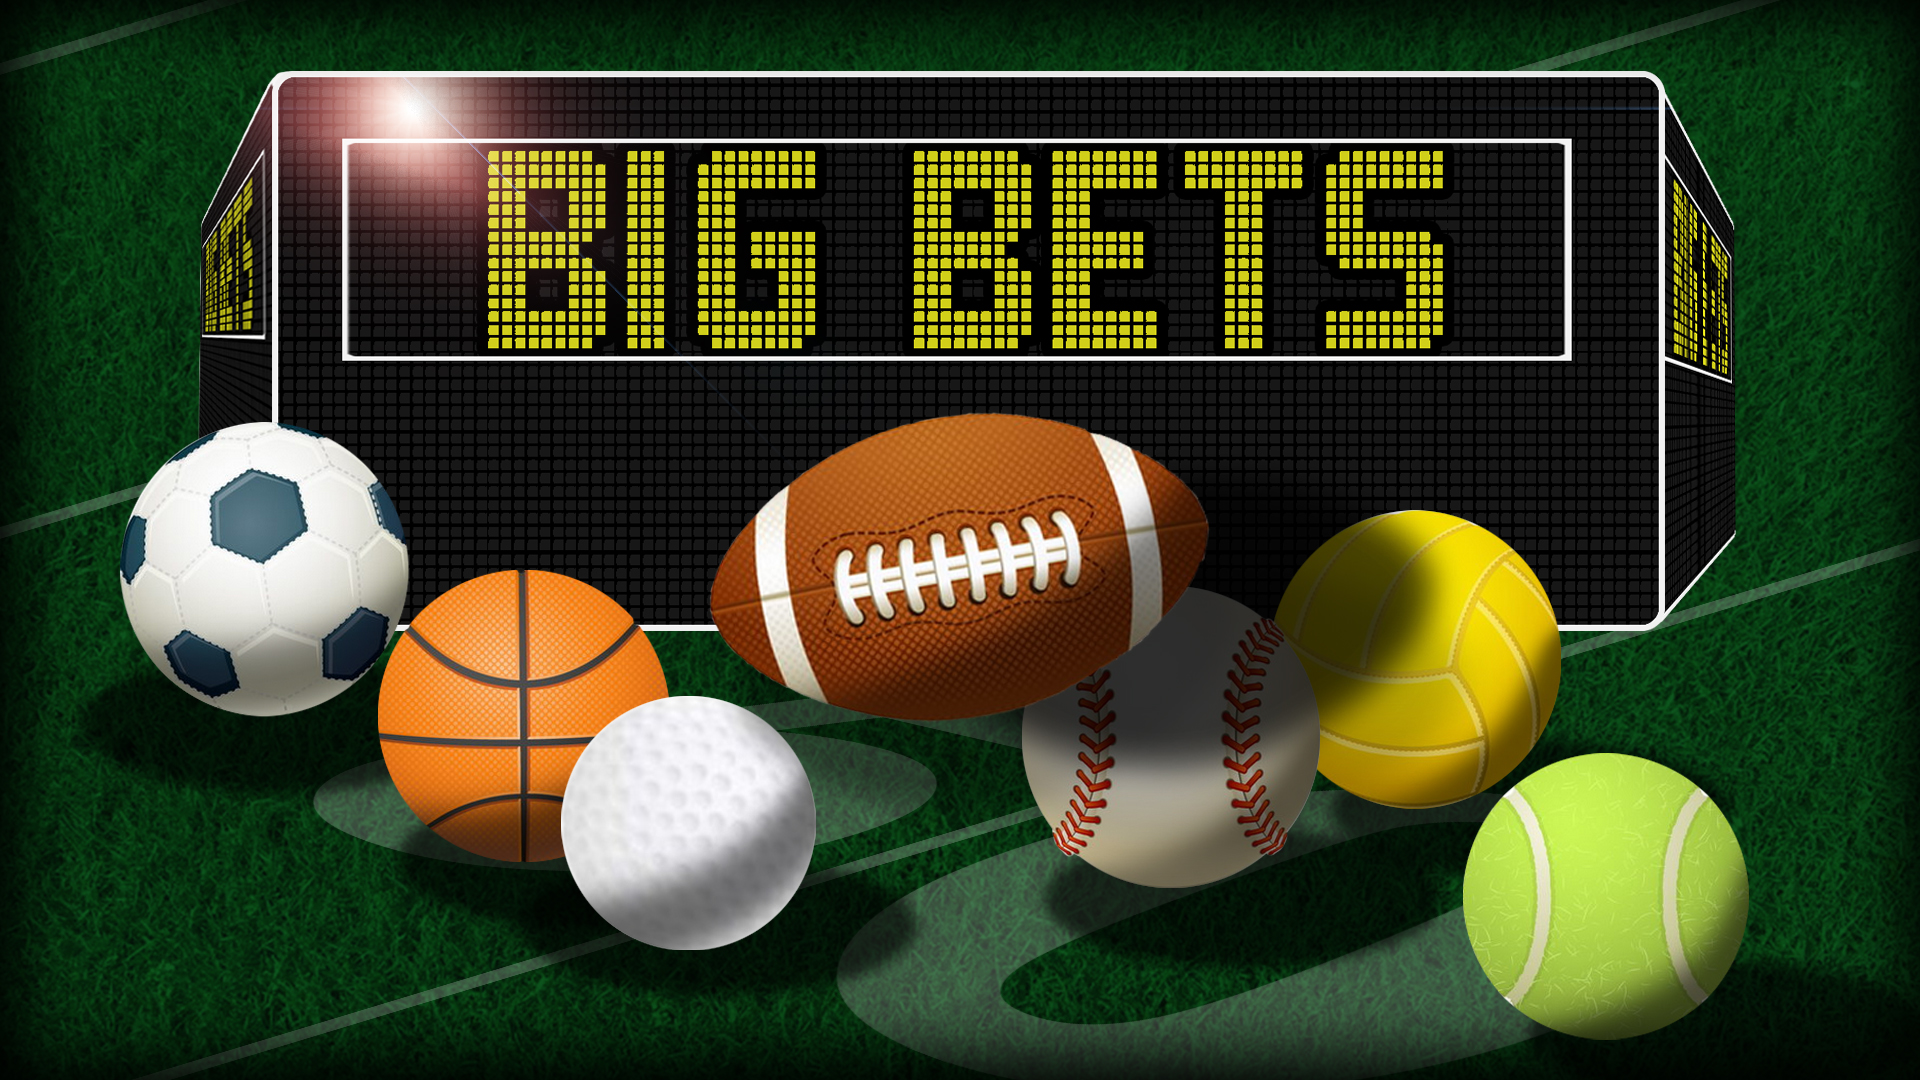 Getting to know about the game variations on online gambling